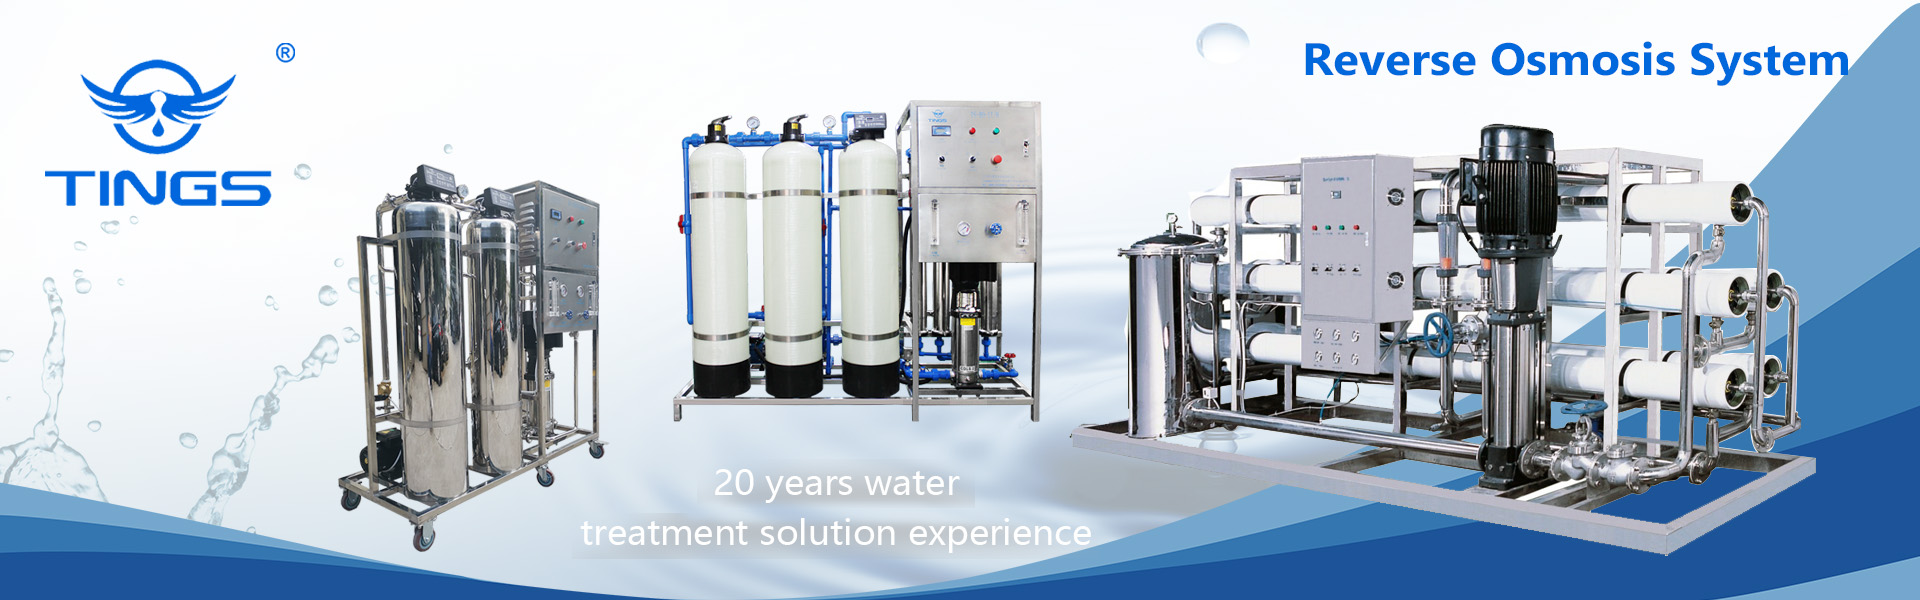 02 20 Years Water Treatment Soluton Experience